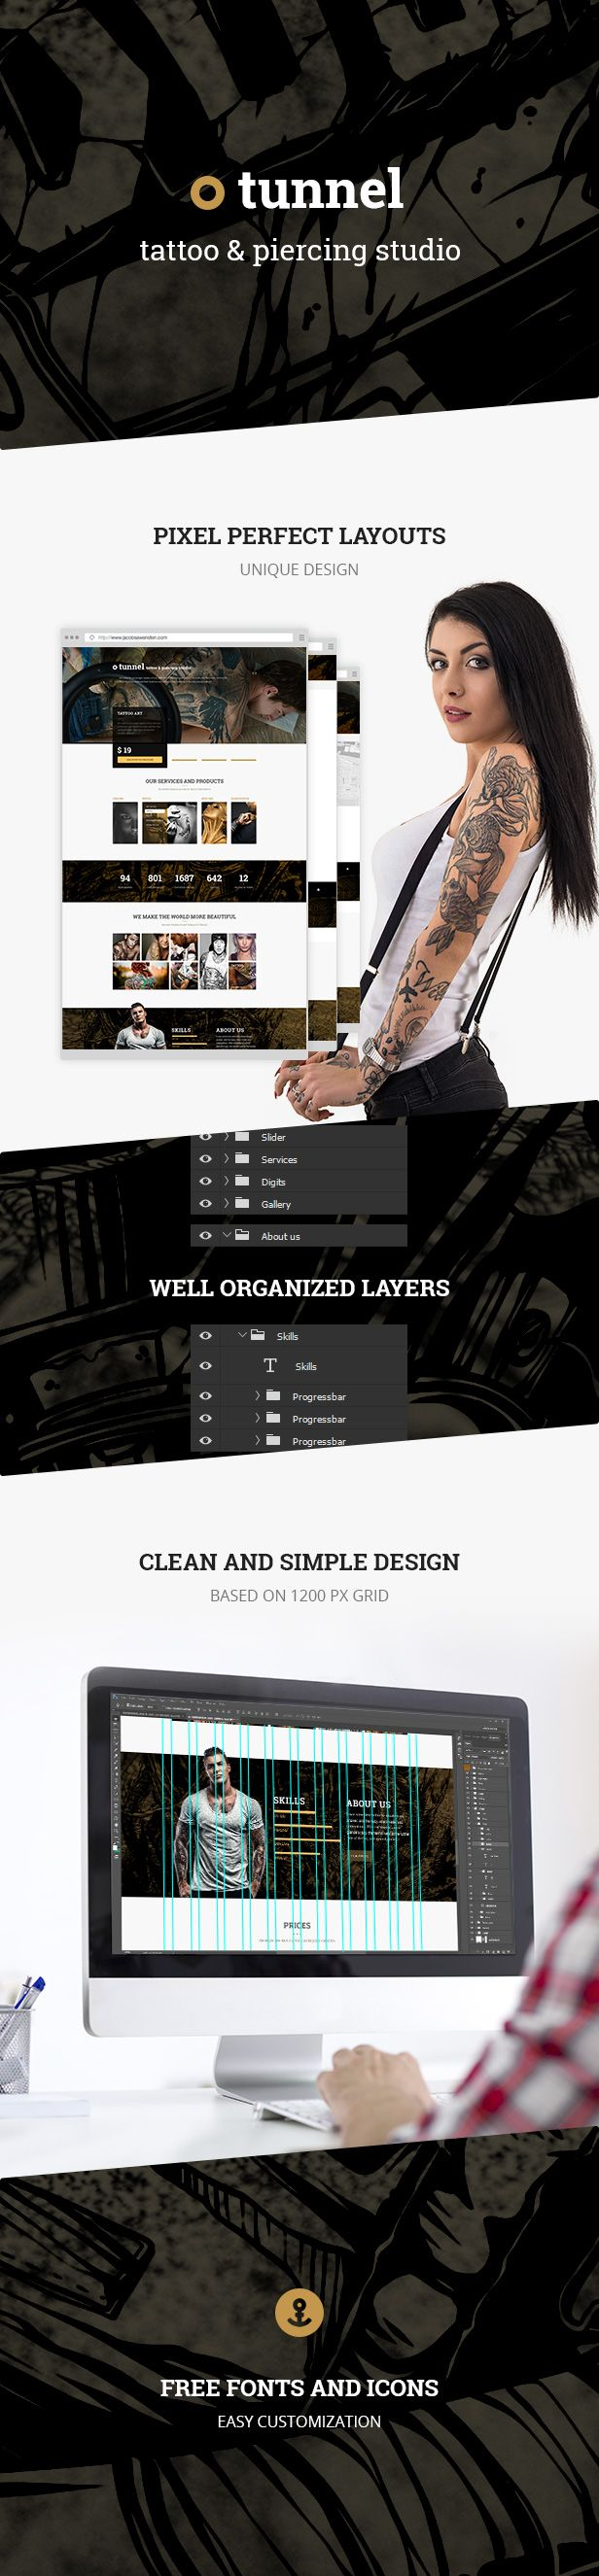 Tunnel  Modern Tattoo and Piercing Studio PSD Template